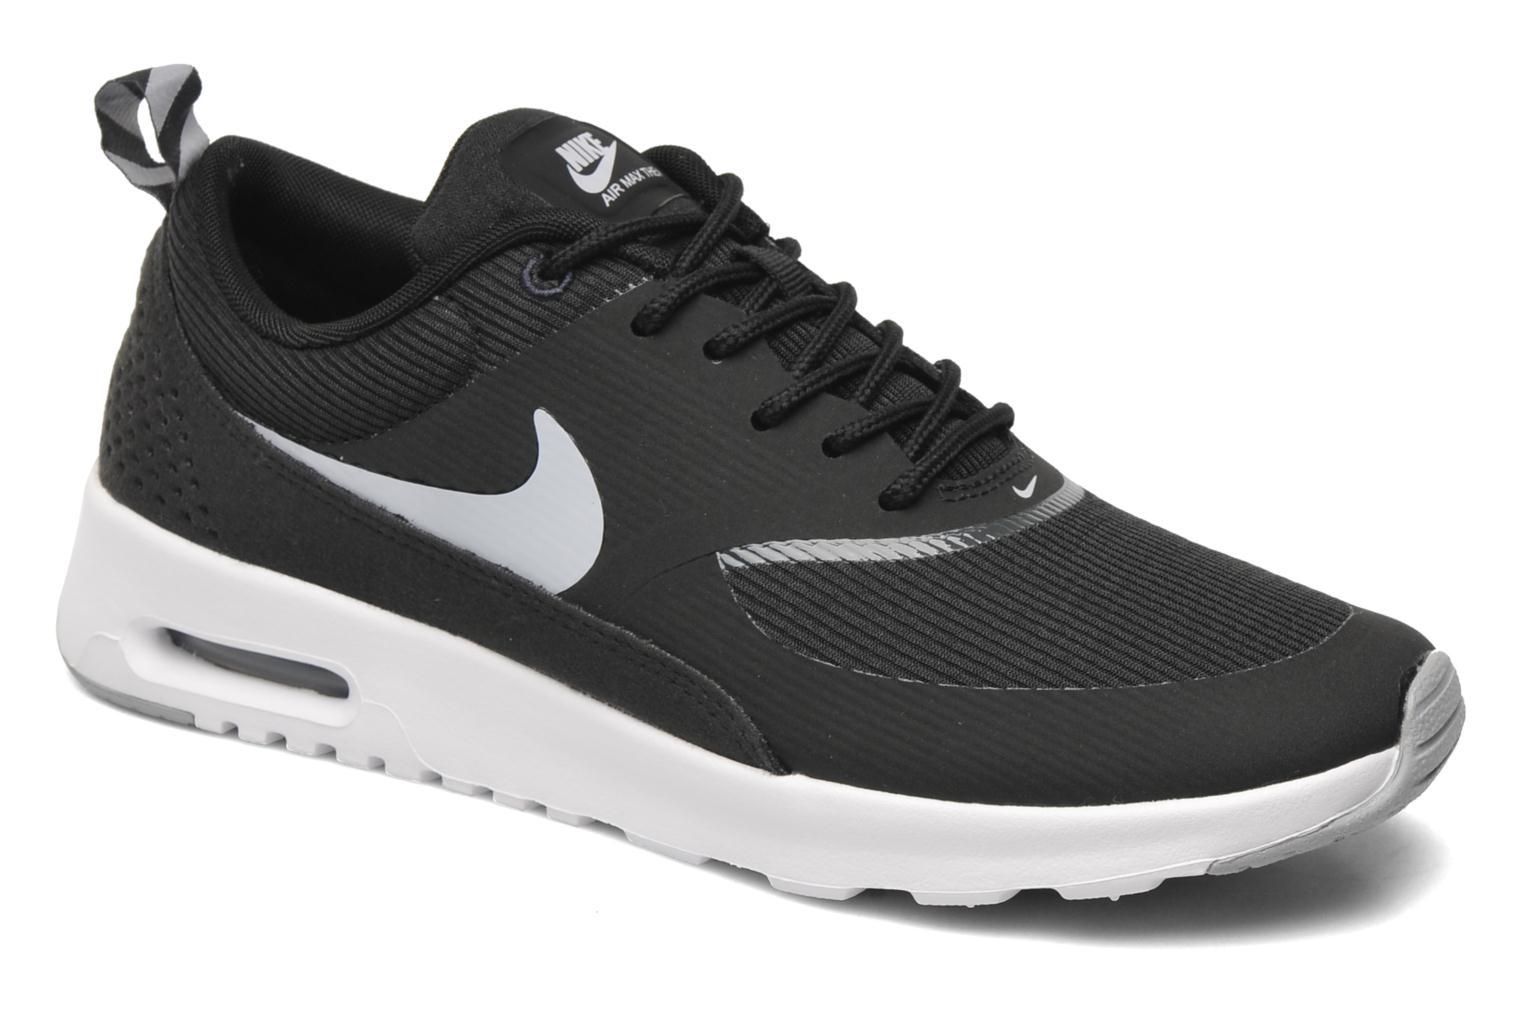 Nike Wmns Nike Air Max Thea @Sarenza.co.uk